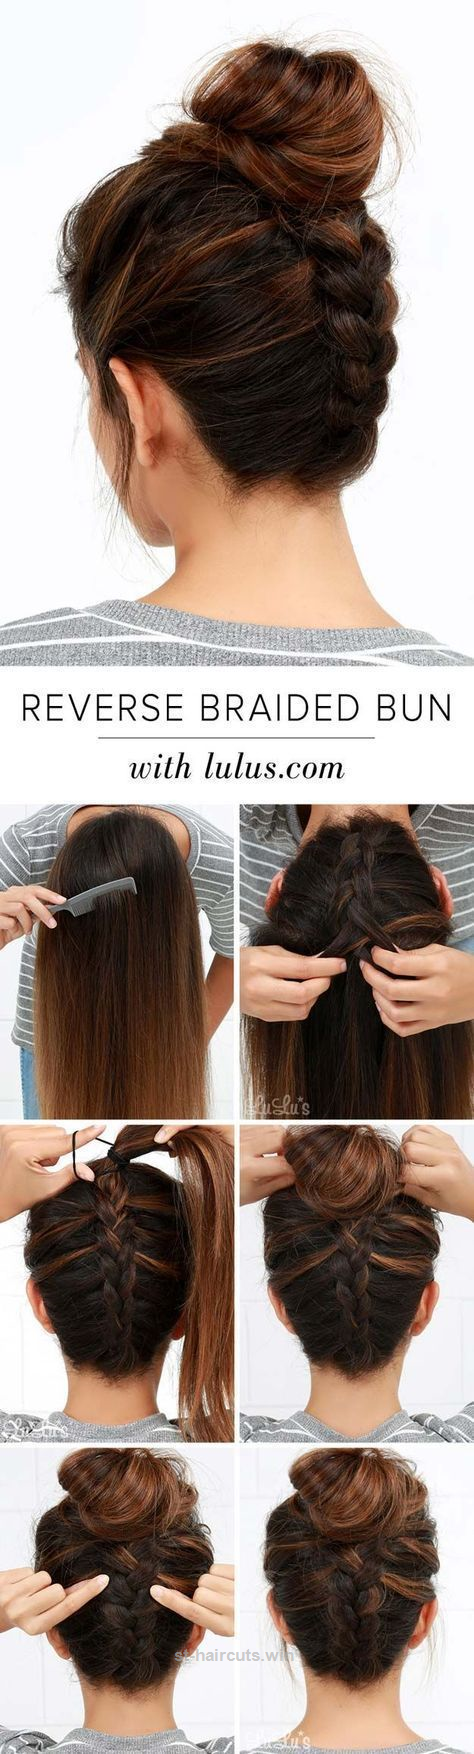 Cool and easy diy hairstyles reversed braided bun quick and easy